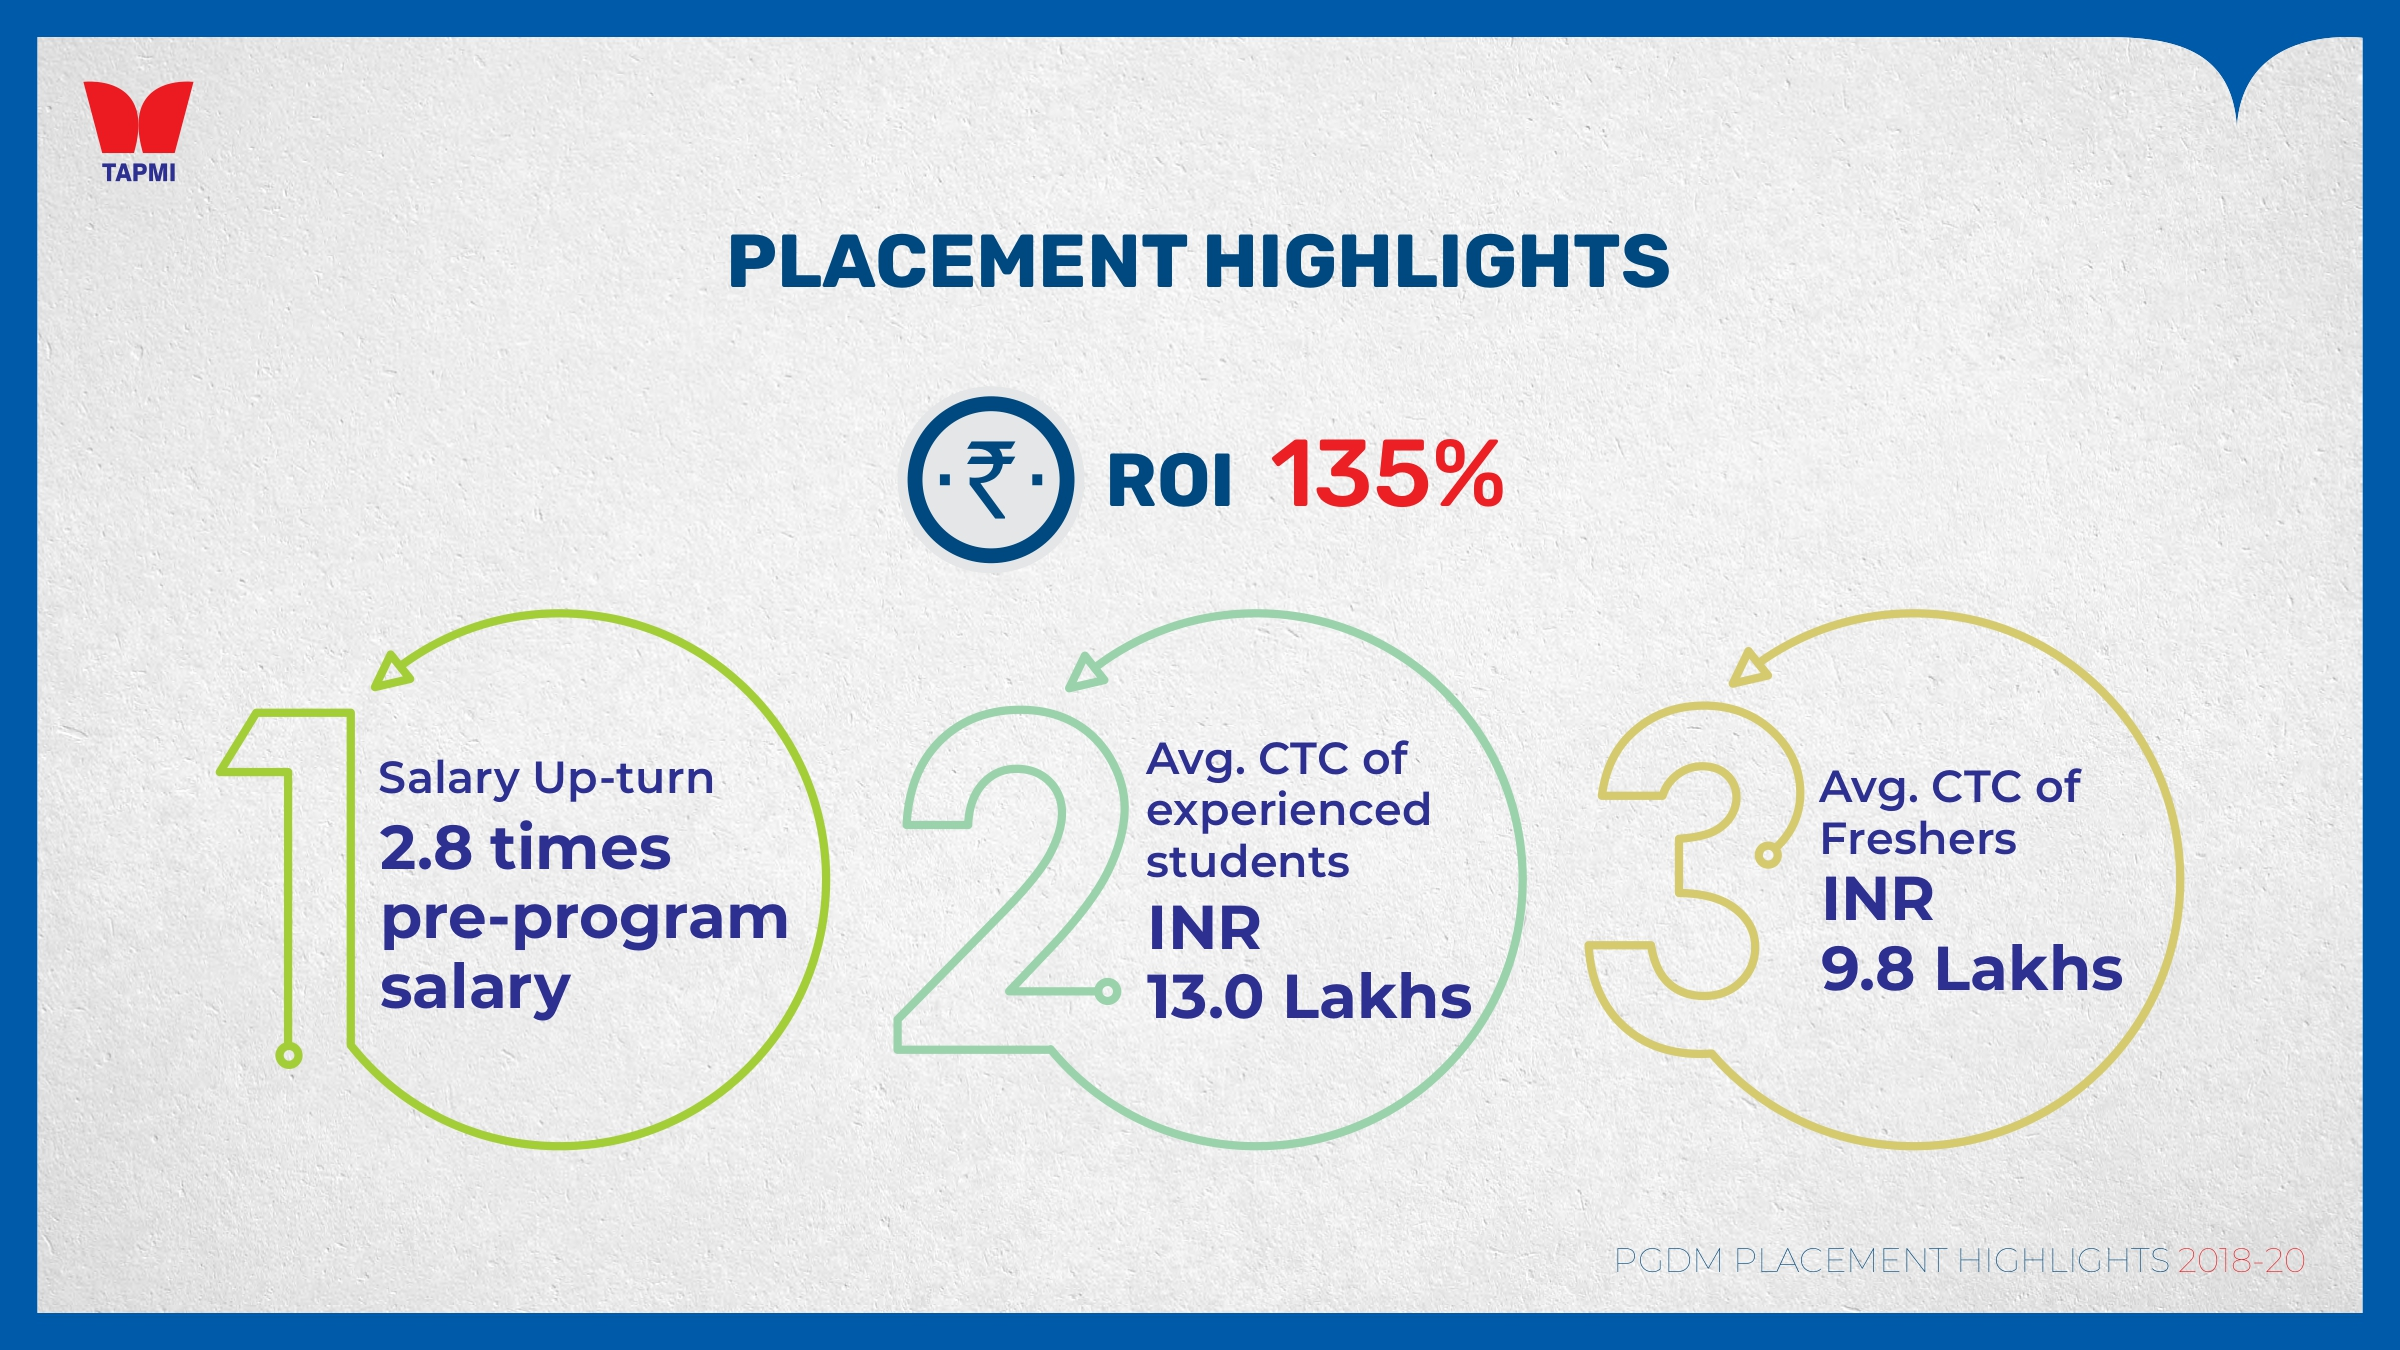 TAPMI PLACEMENT